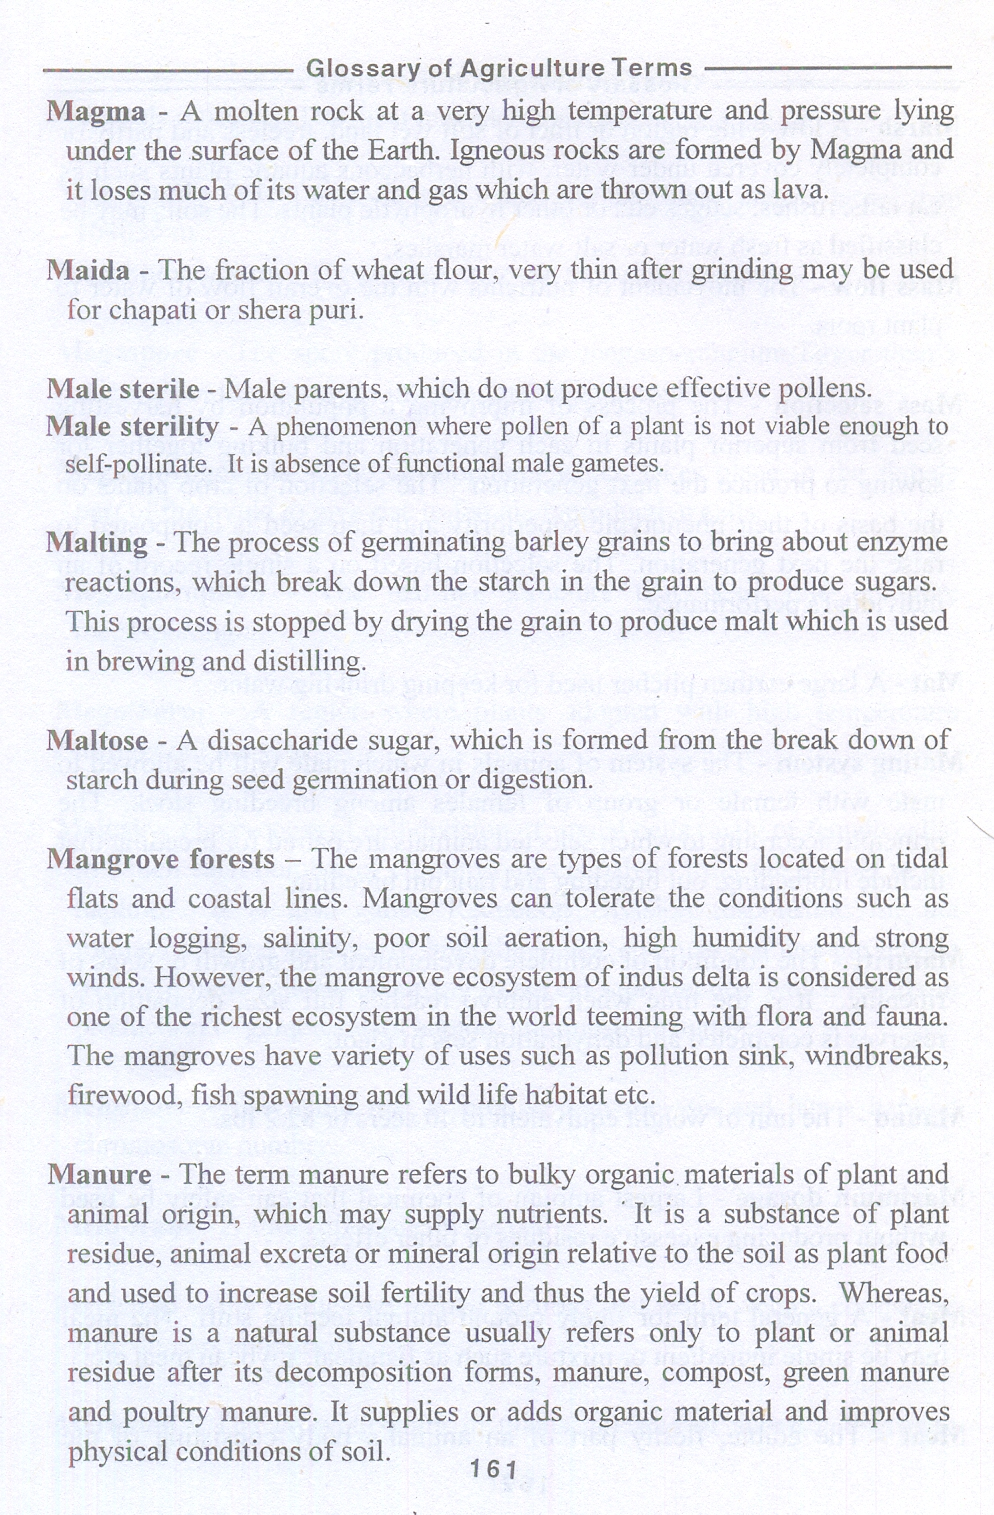 Glossary or Agriculture Terms | Roshni Publication